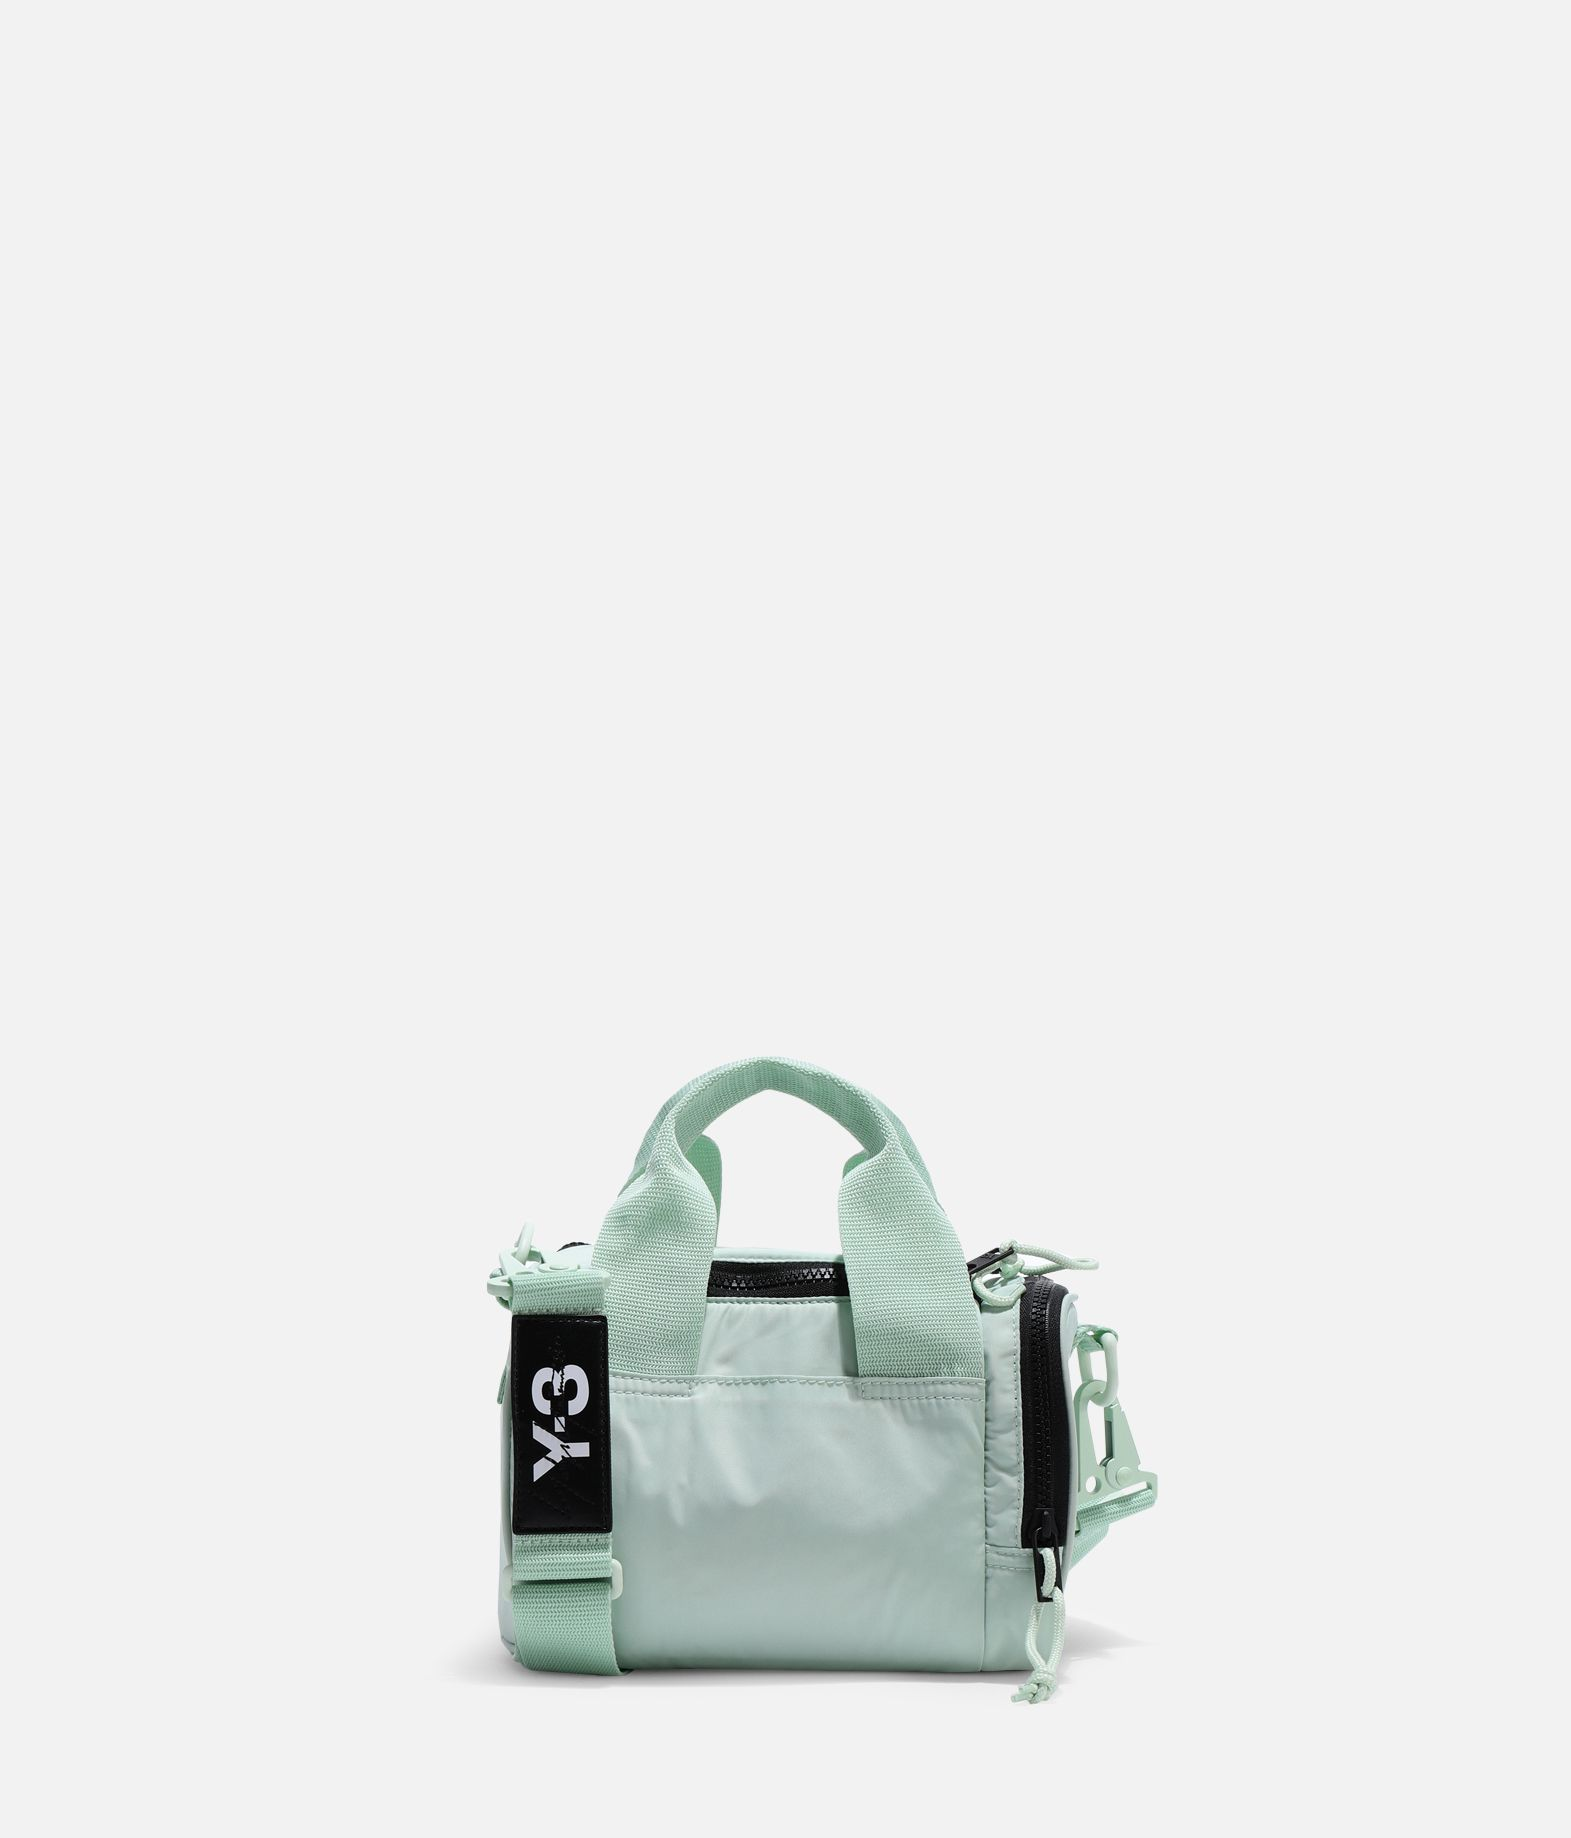 ... Y-3 Y-3 Mini Bag Small fabric bag E f ... e849fcddcac97